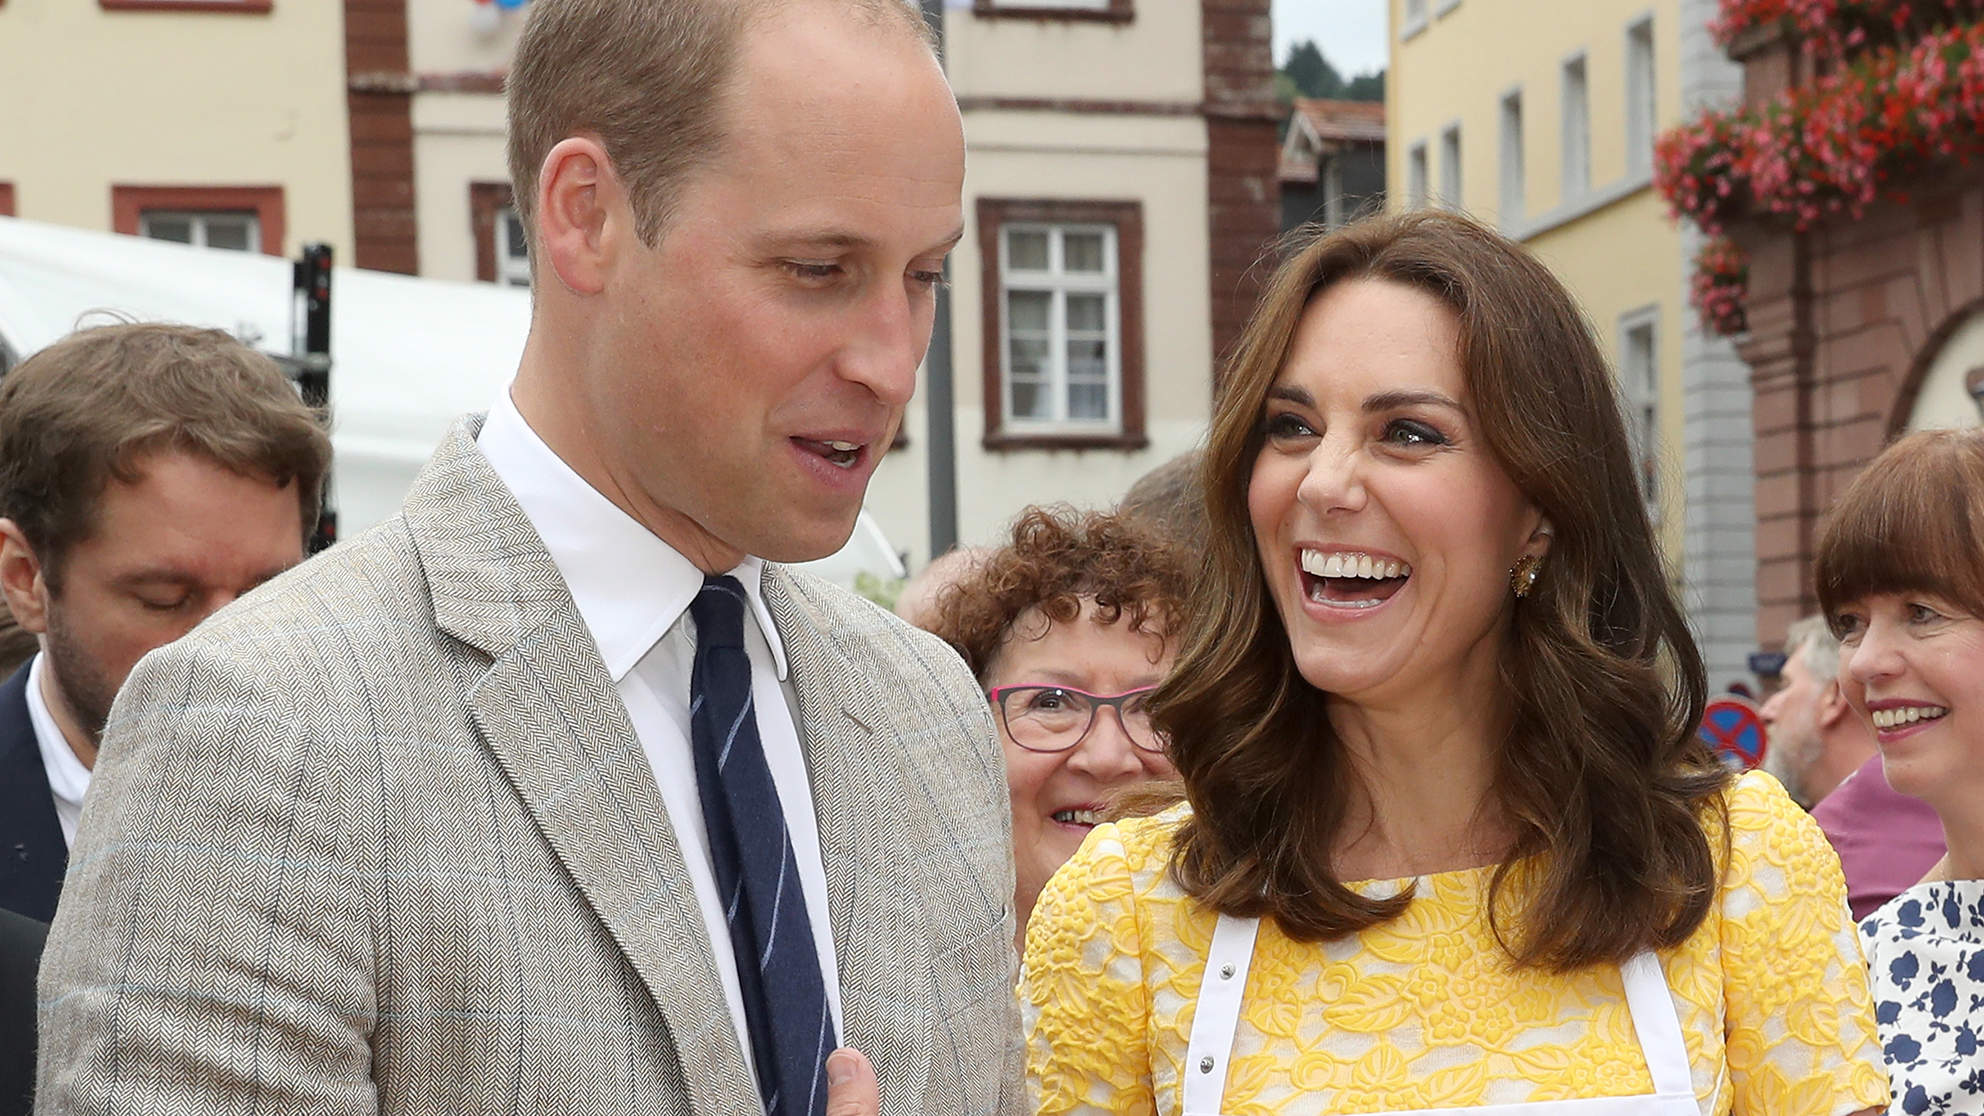 Pregnant Kate Middleton Steps Out for Last Public Outing with Prince William Before Baby No. 3